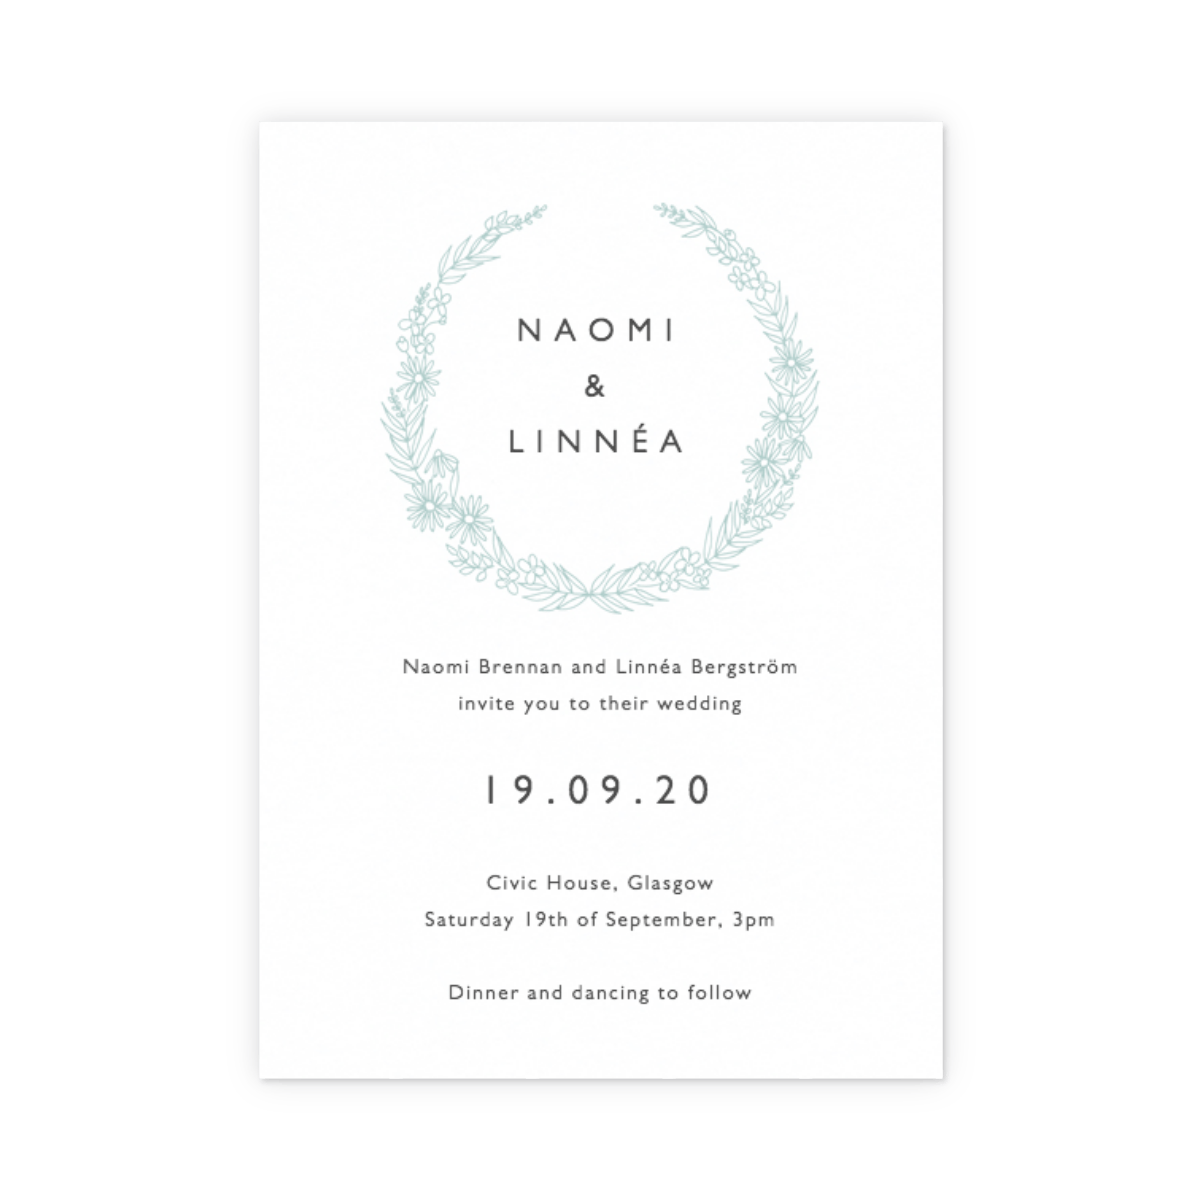 Wedding Invitation Wording - Ideas & Inspiration  Papier